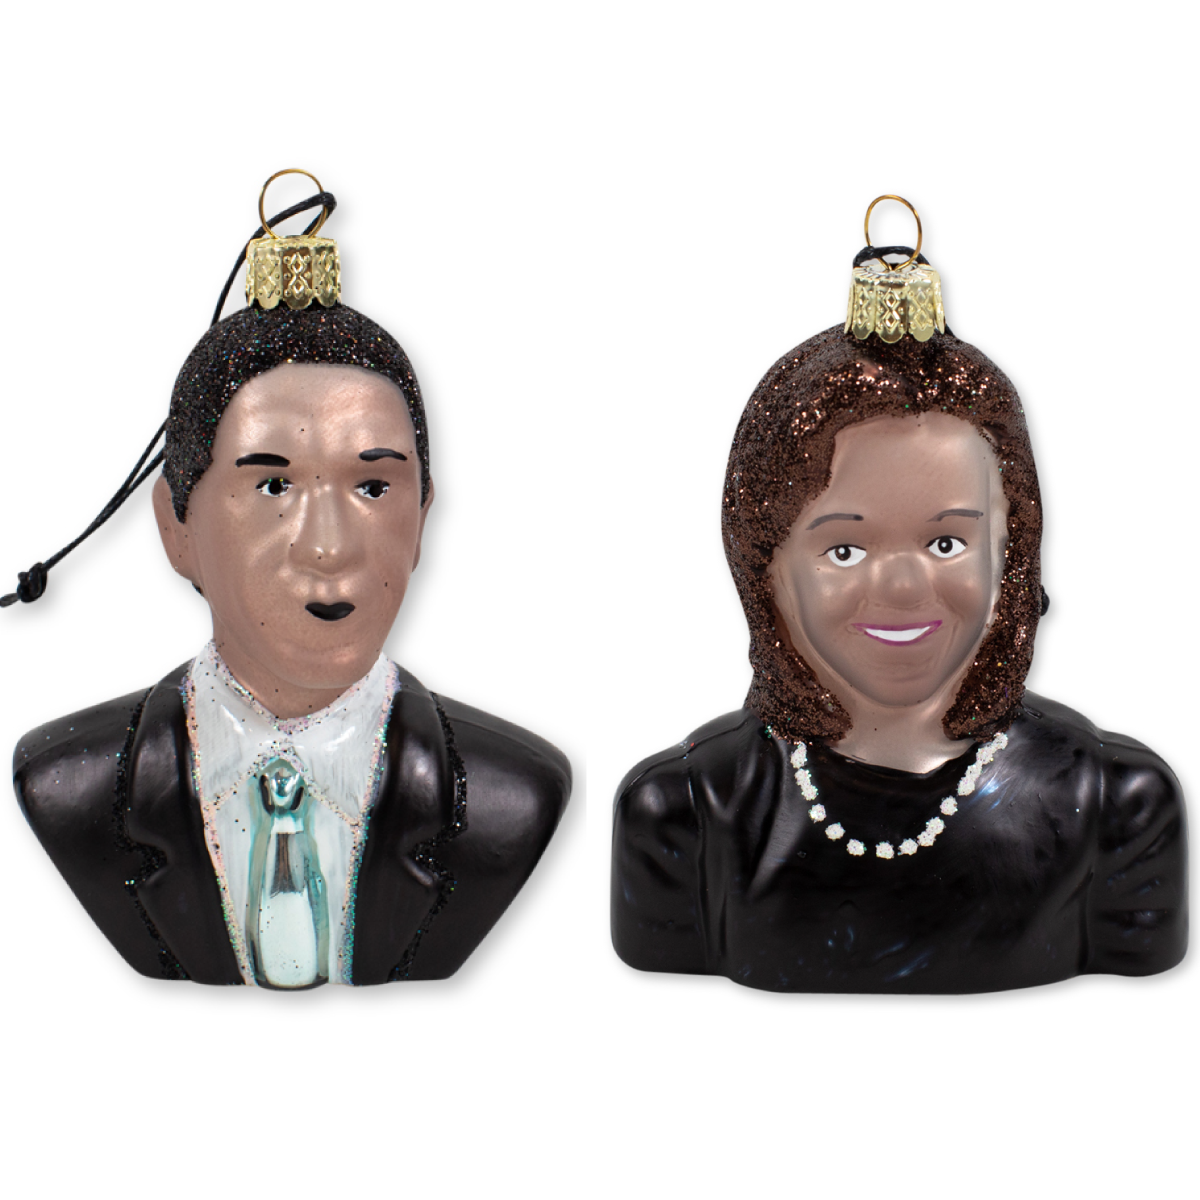 Barack and Michelle Obama Christmas tree ornaments.  Set of 2.